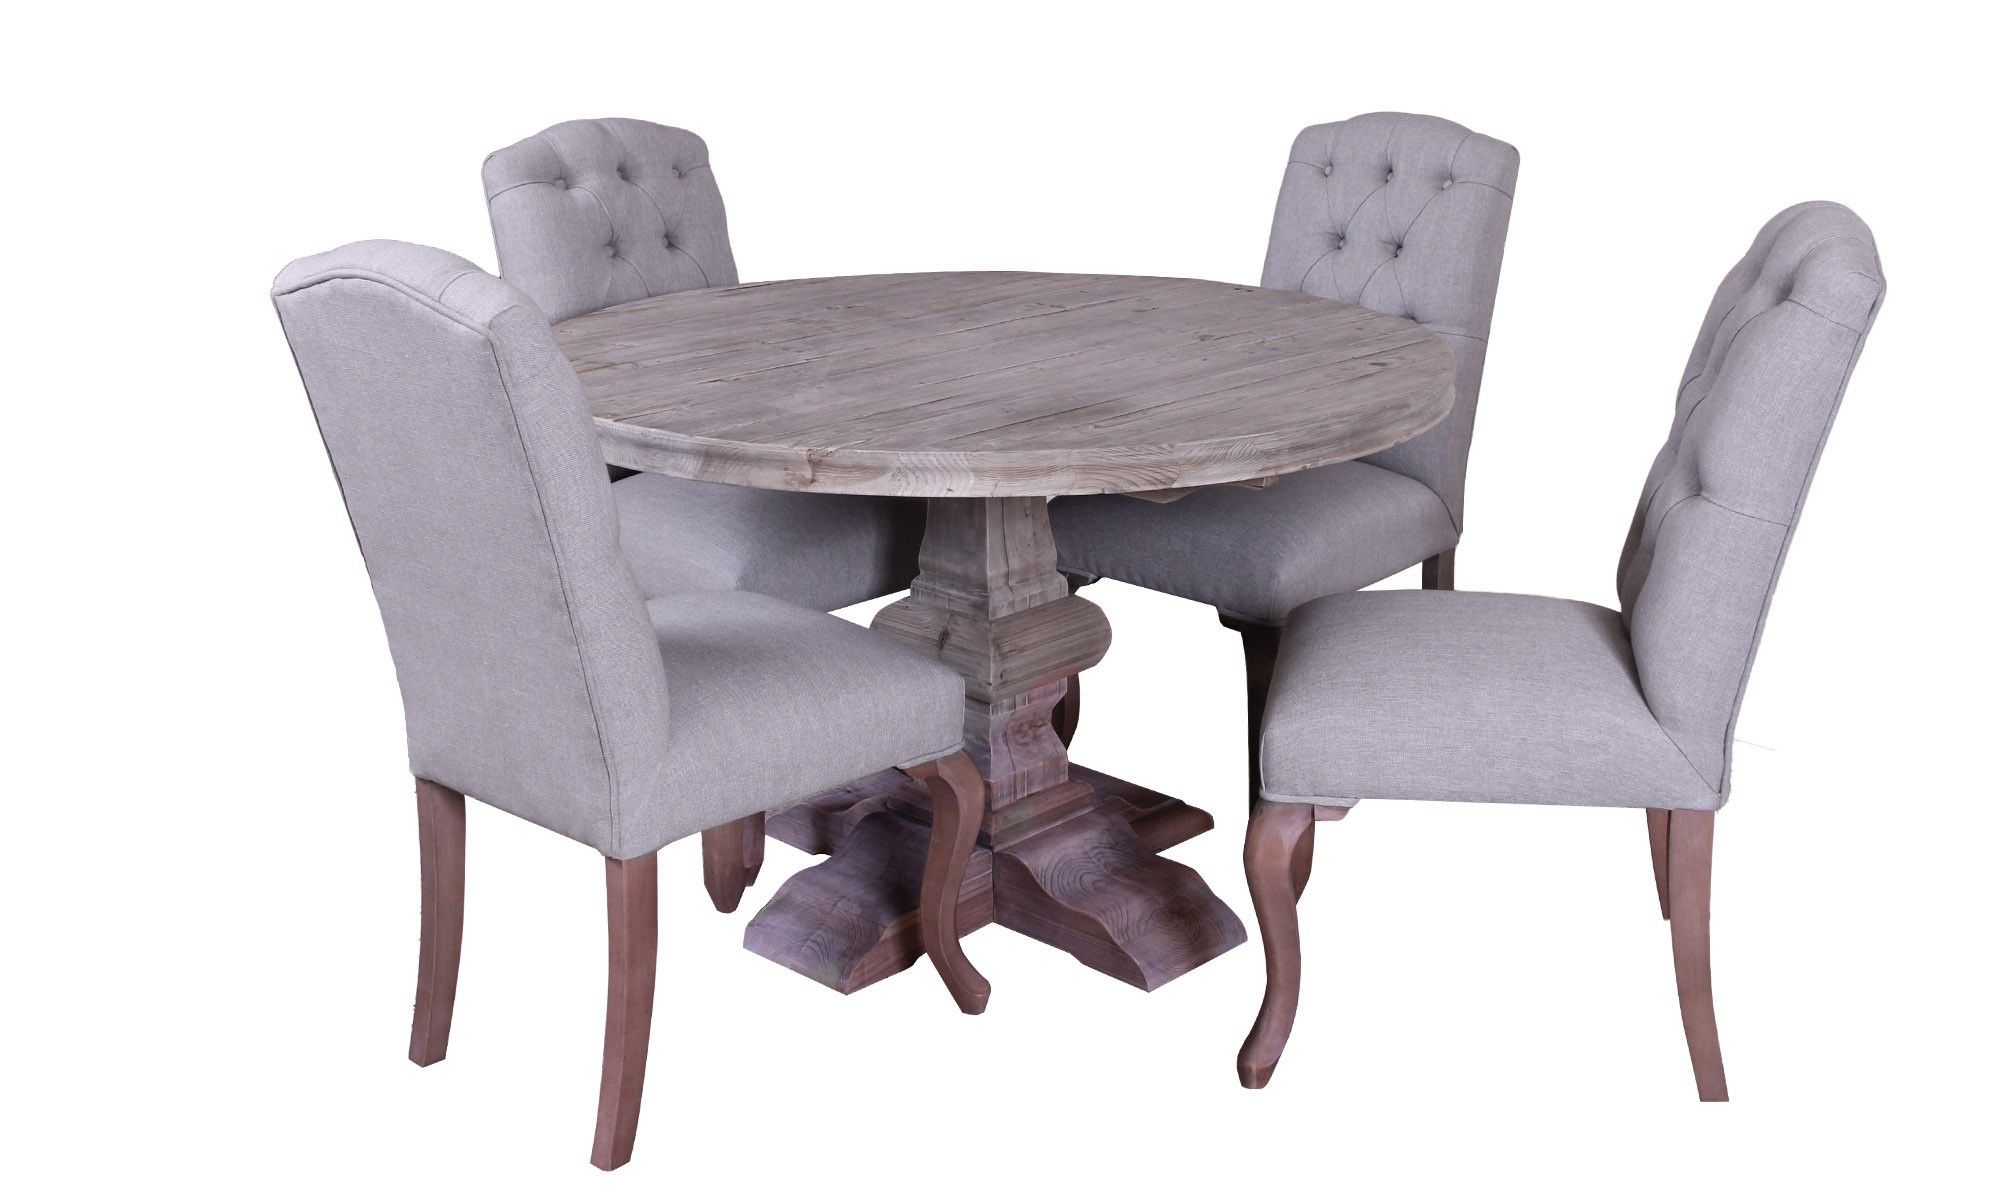 Round dining table and chairs for 4  Lexington  Round Dining Table u  Button Back Chairs  Home